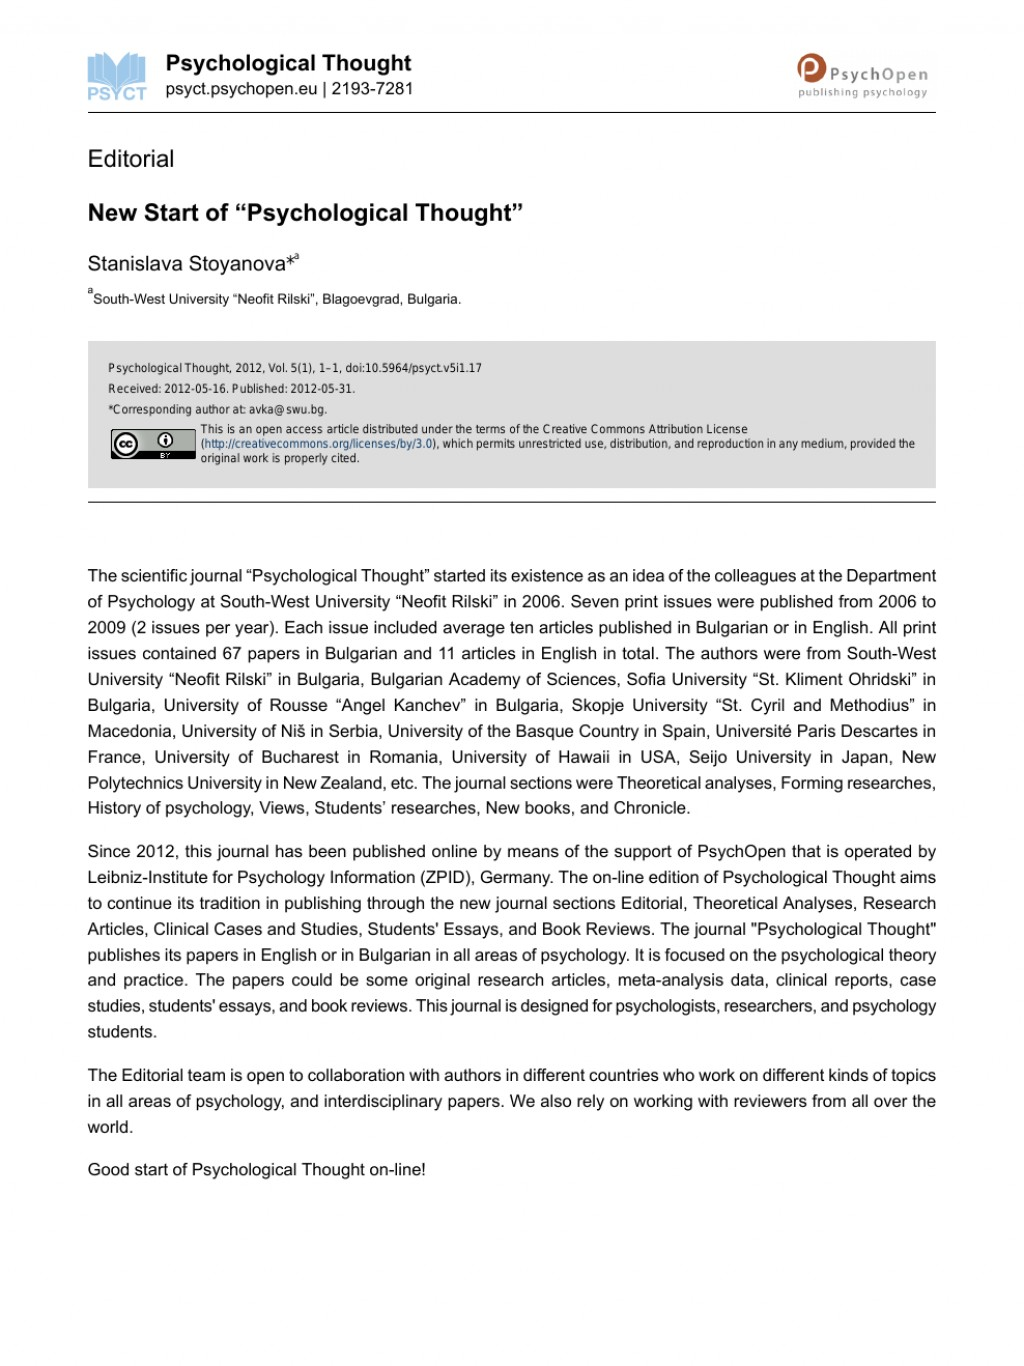 009 Research Paper Latest Papers On Psychology Fearsome Topics For Criminal In Forensic Large